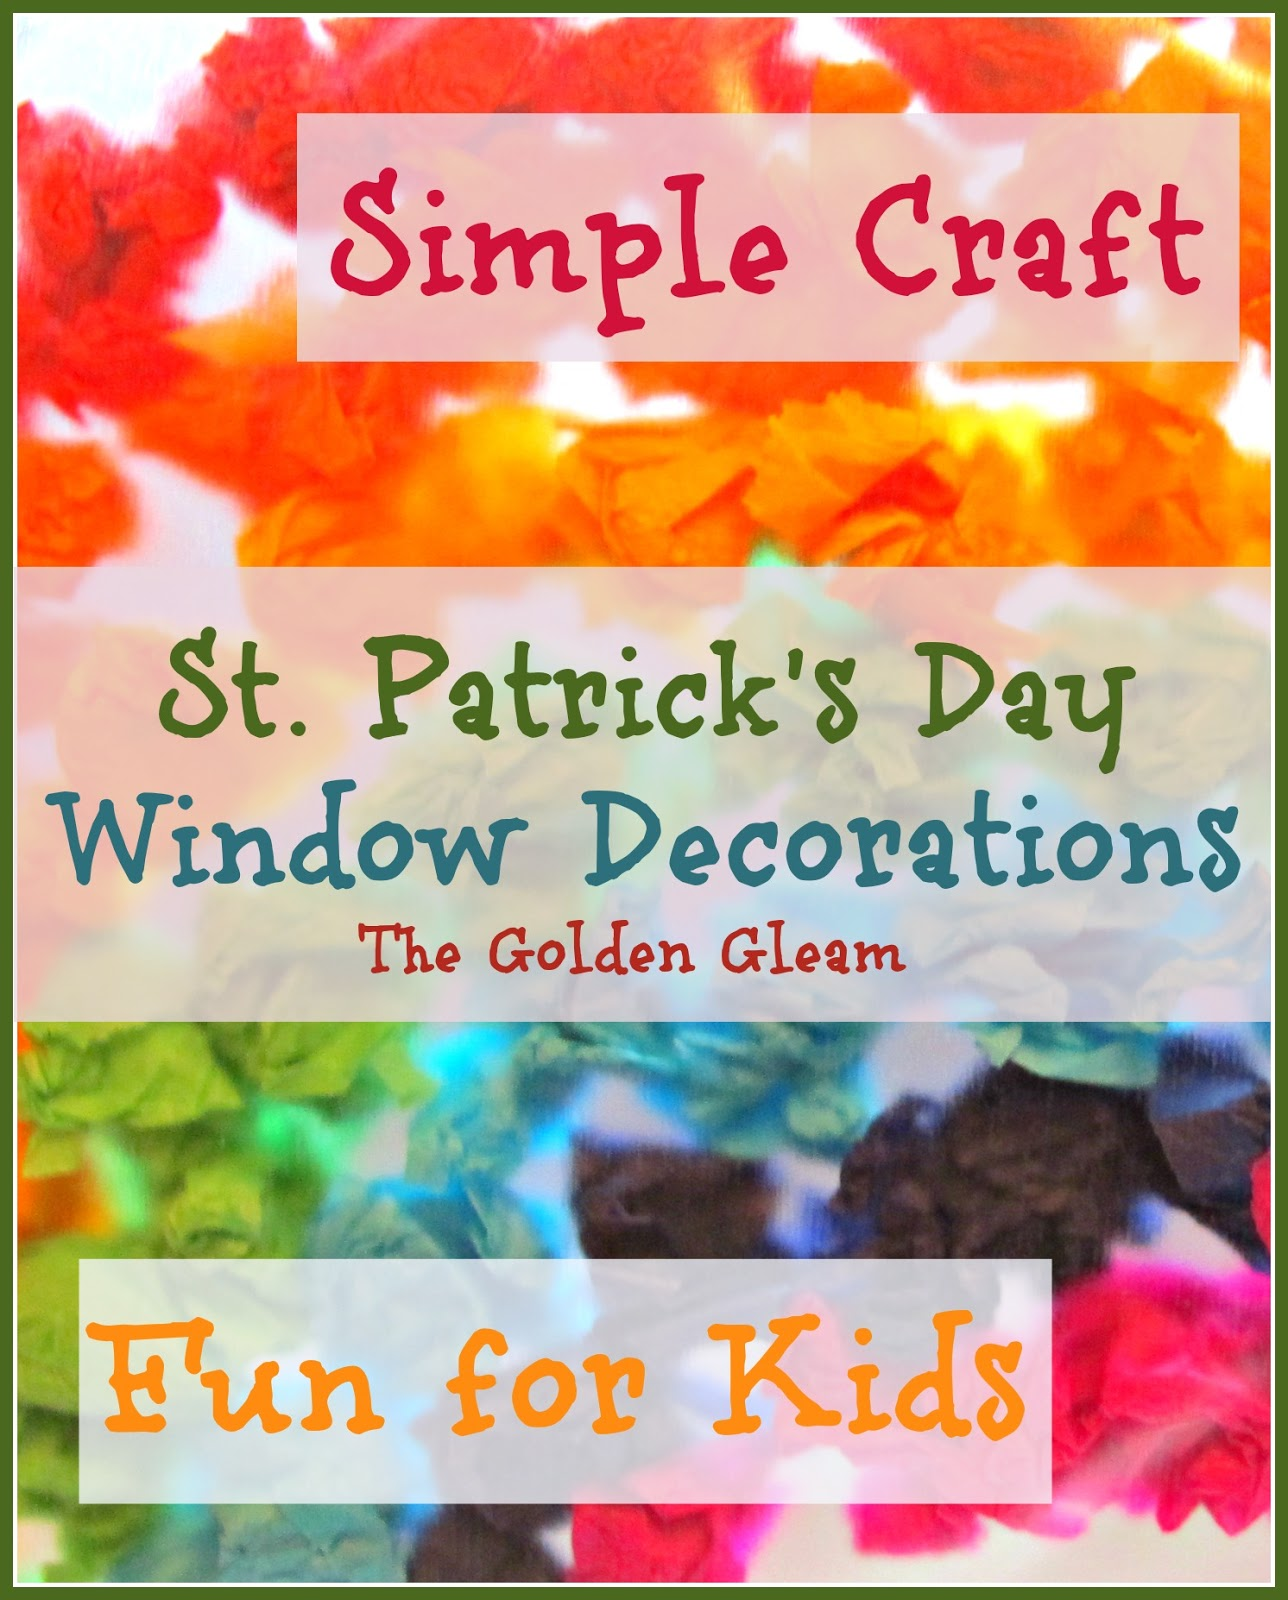 The Golden Gleam: St. Patrick's Day Window Decorations